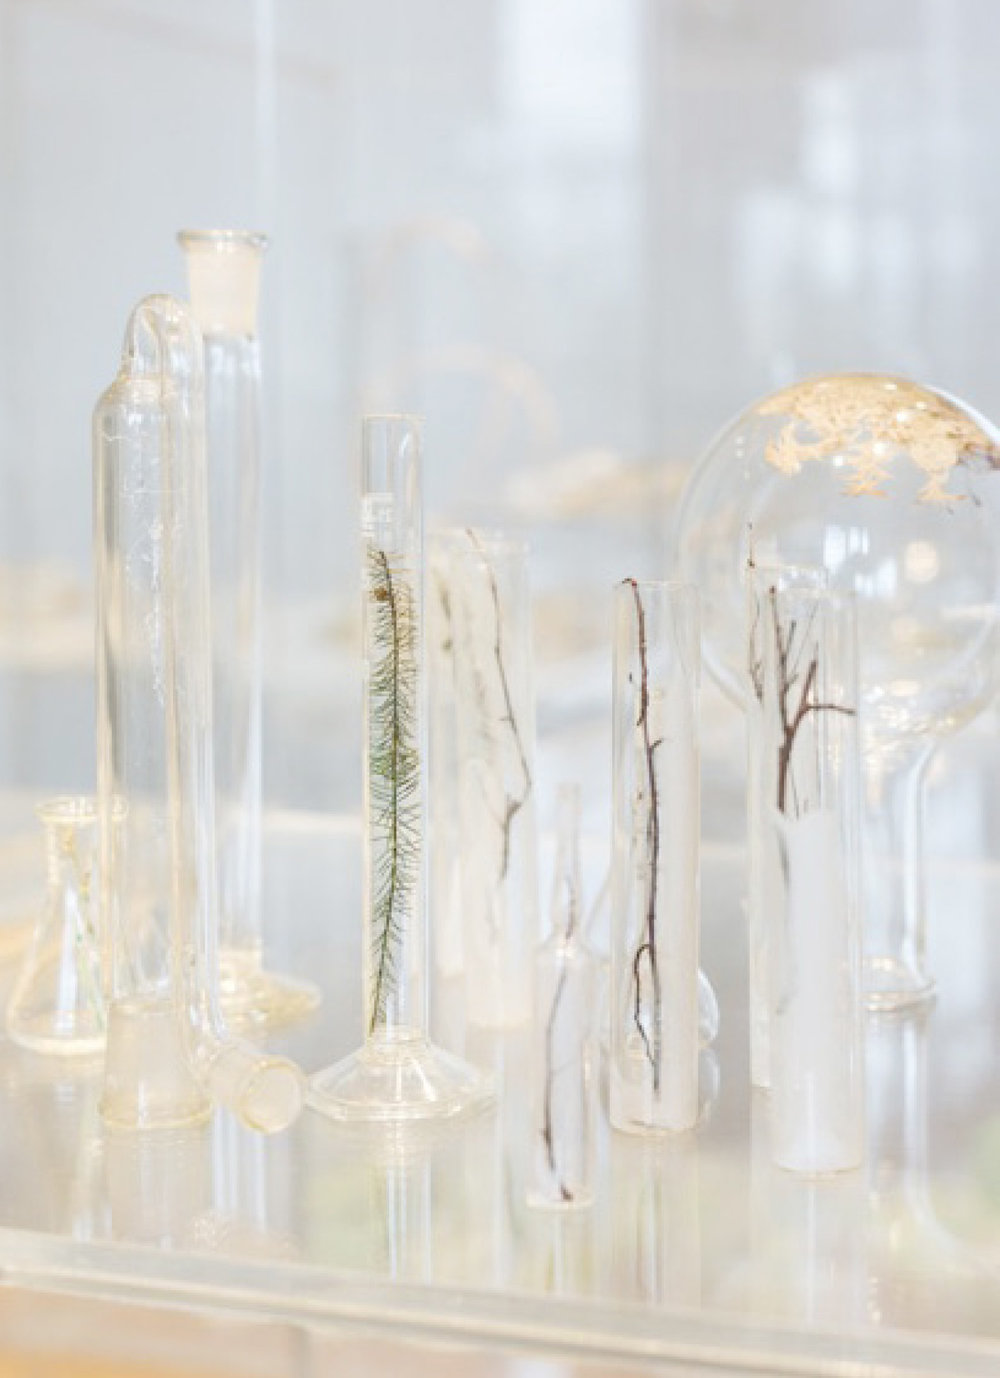 JANET LAURENCE   Waiting- a sanctuary for ailing plants  (Installation view) 2017 Scientific glass tubes, printed transparencies, seeds and other botanical matter, acrylic boxes, mirror Photographs by Frank Sperling